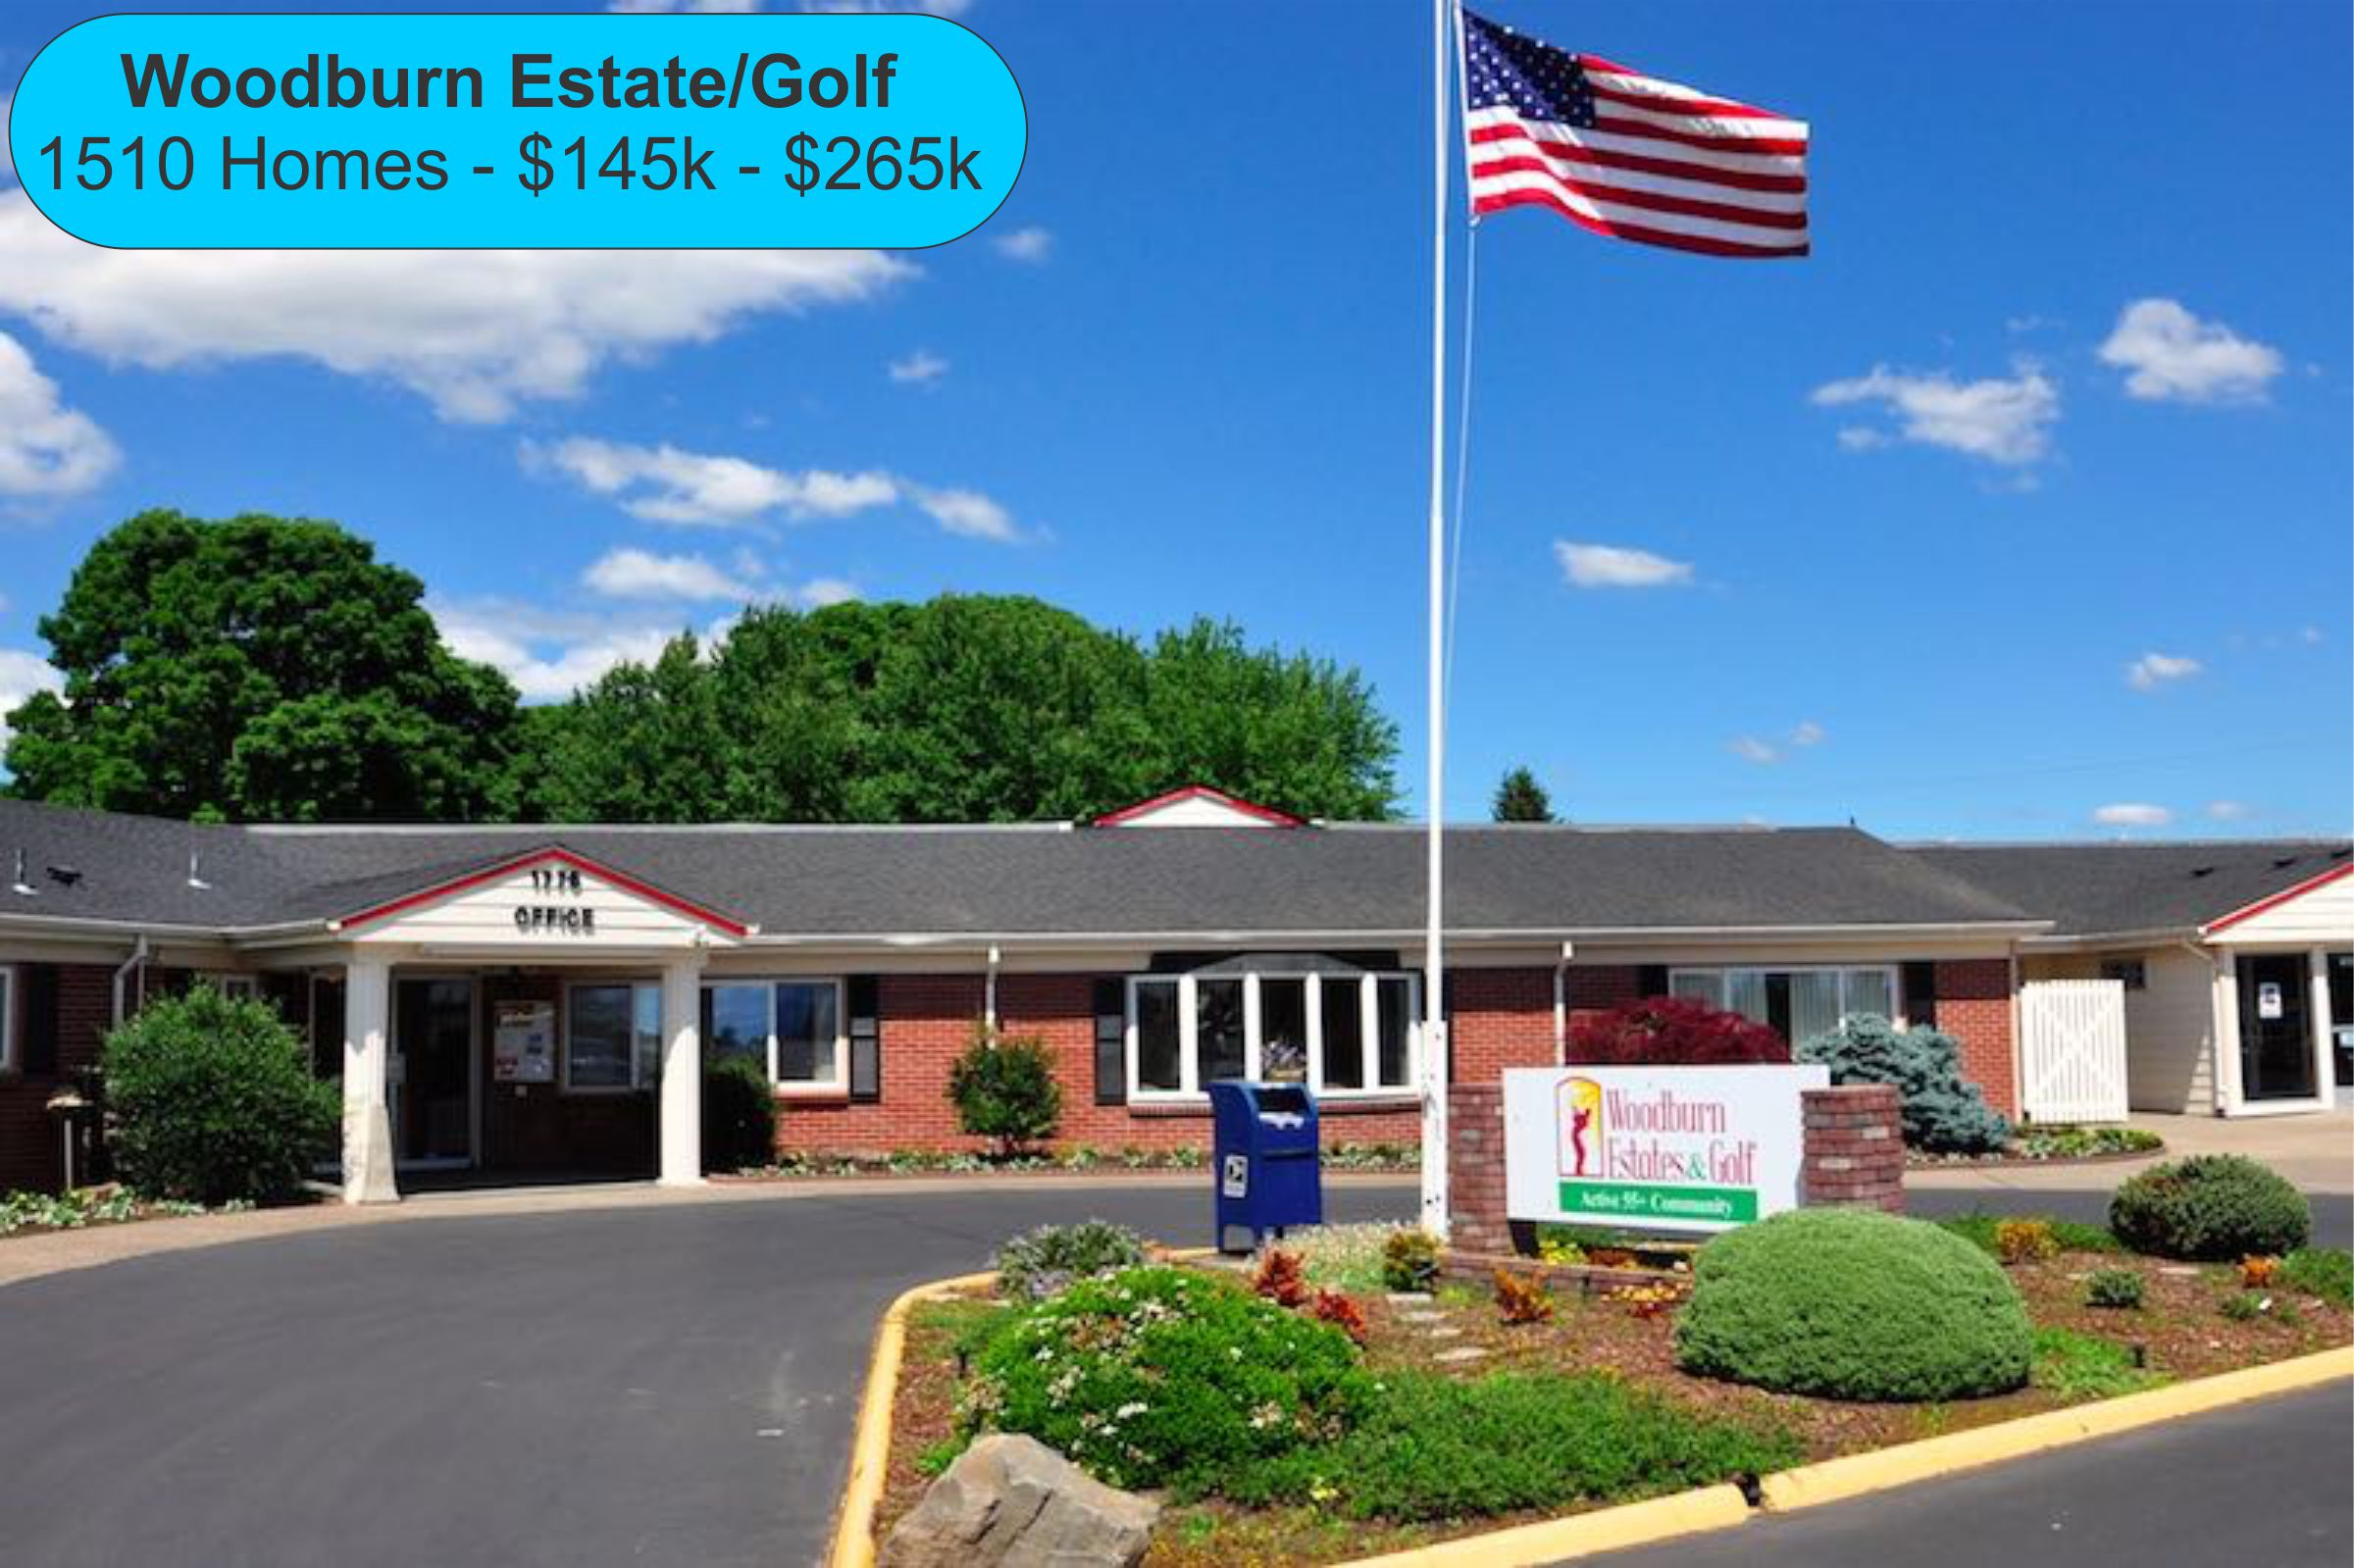 Homes for sale in Woodburn Estate & Golf in Woodburn